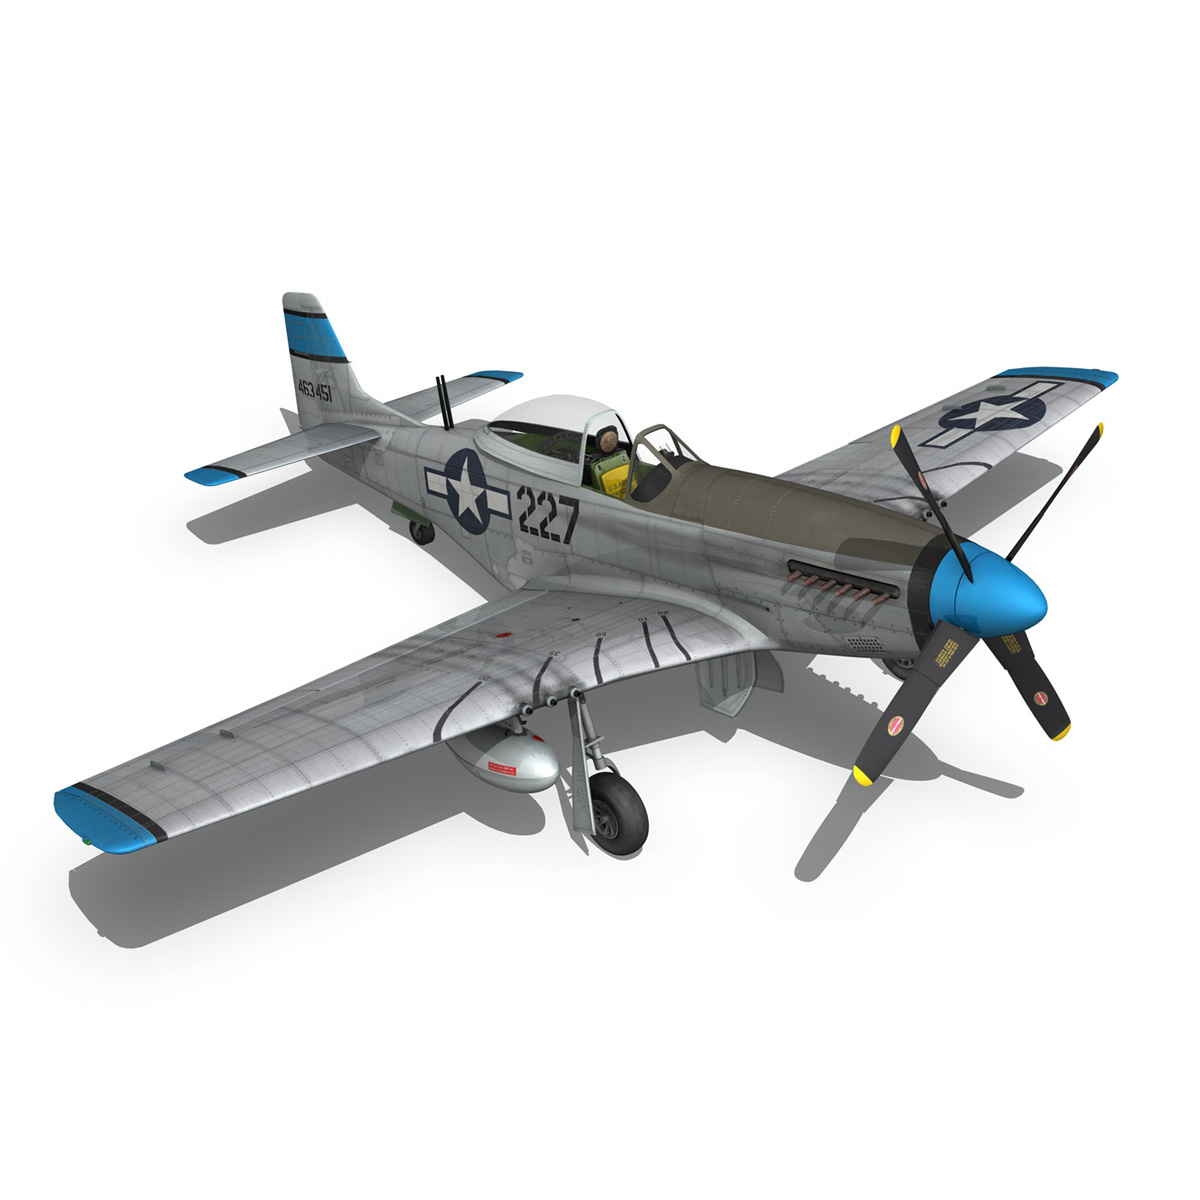 north american p-51d – mustang – mary alyce 3d model 3ds fbx c4d lwo obj 267581